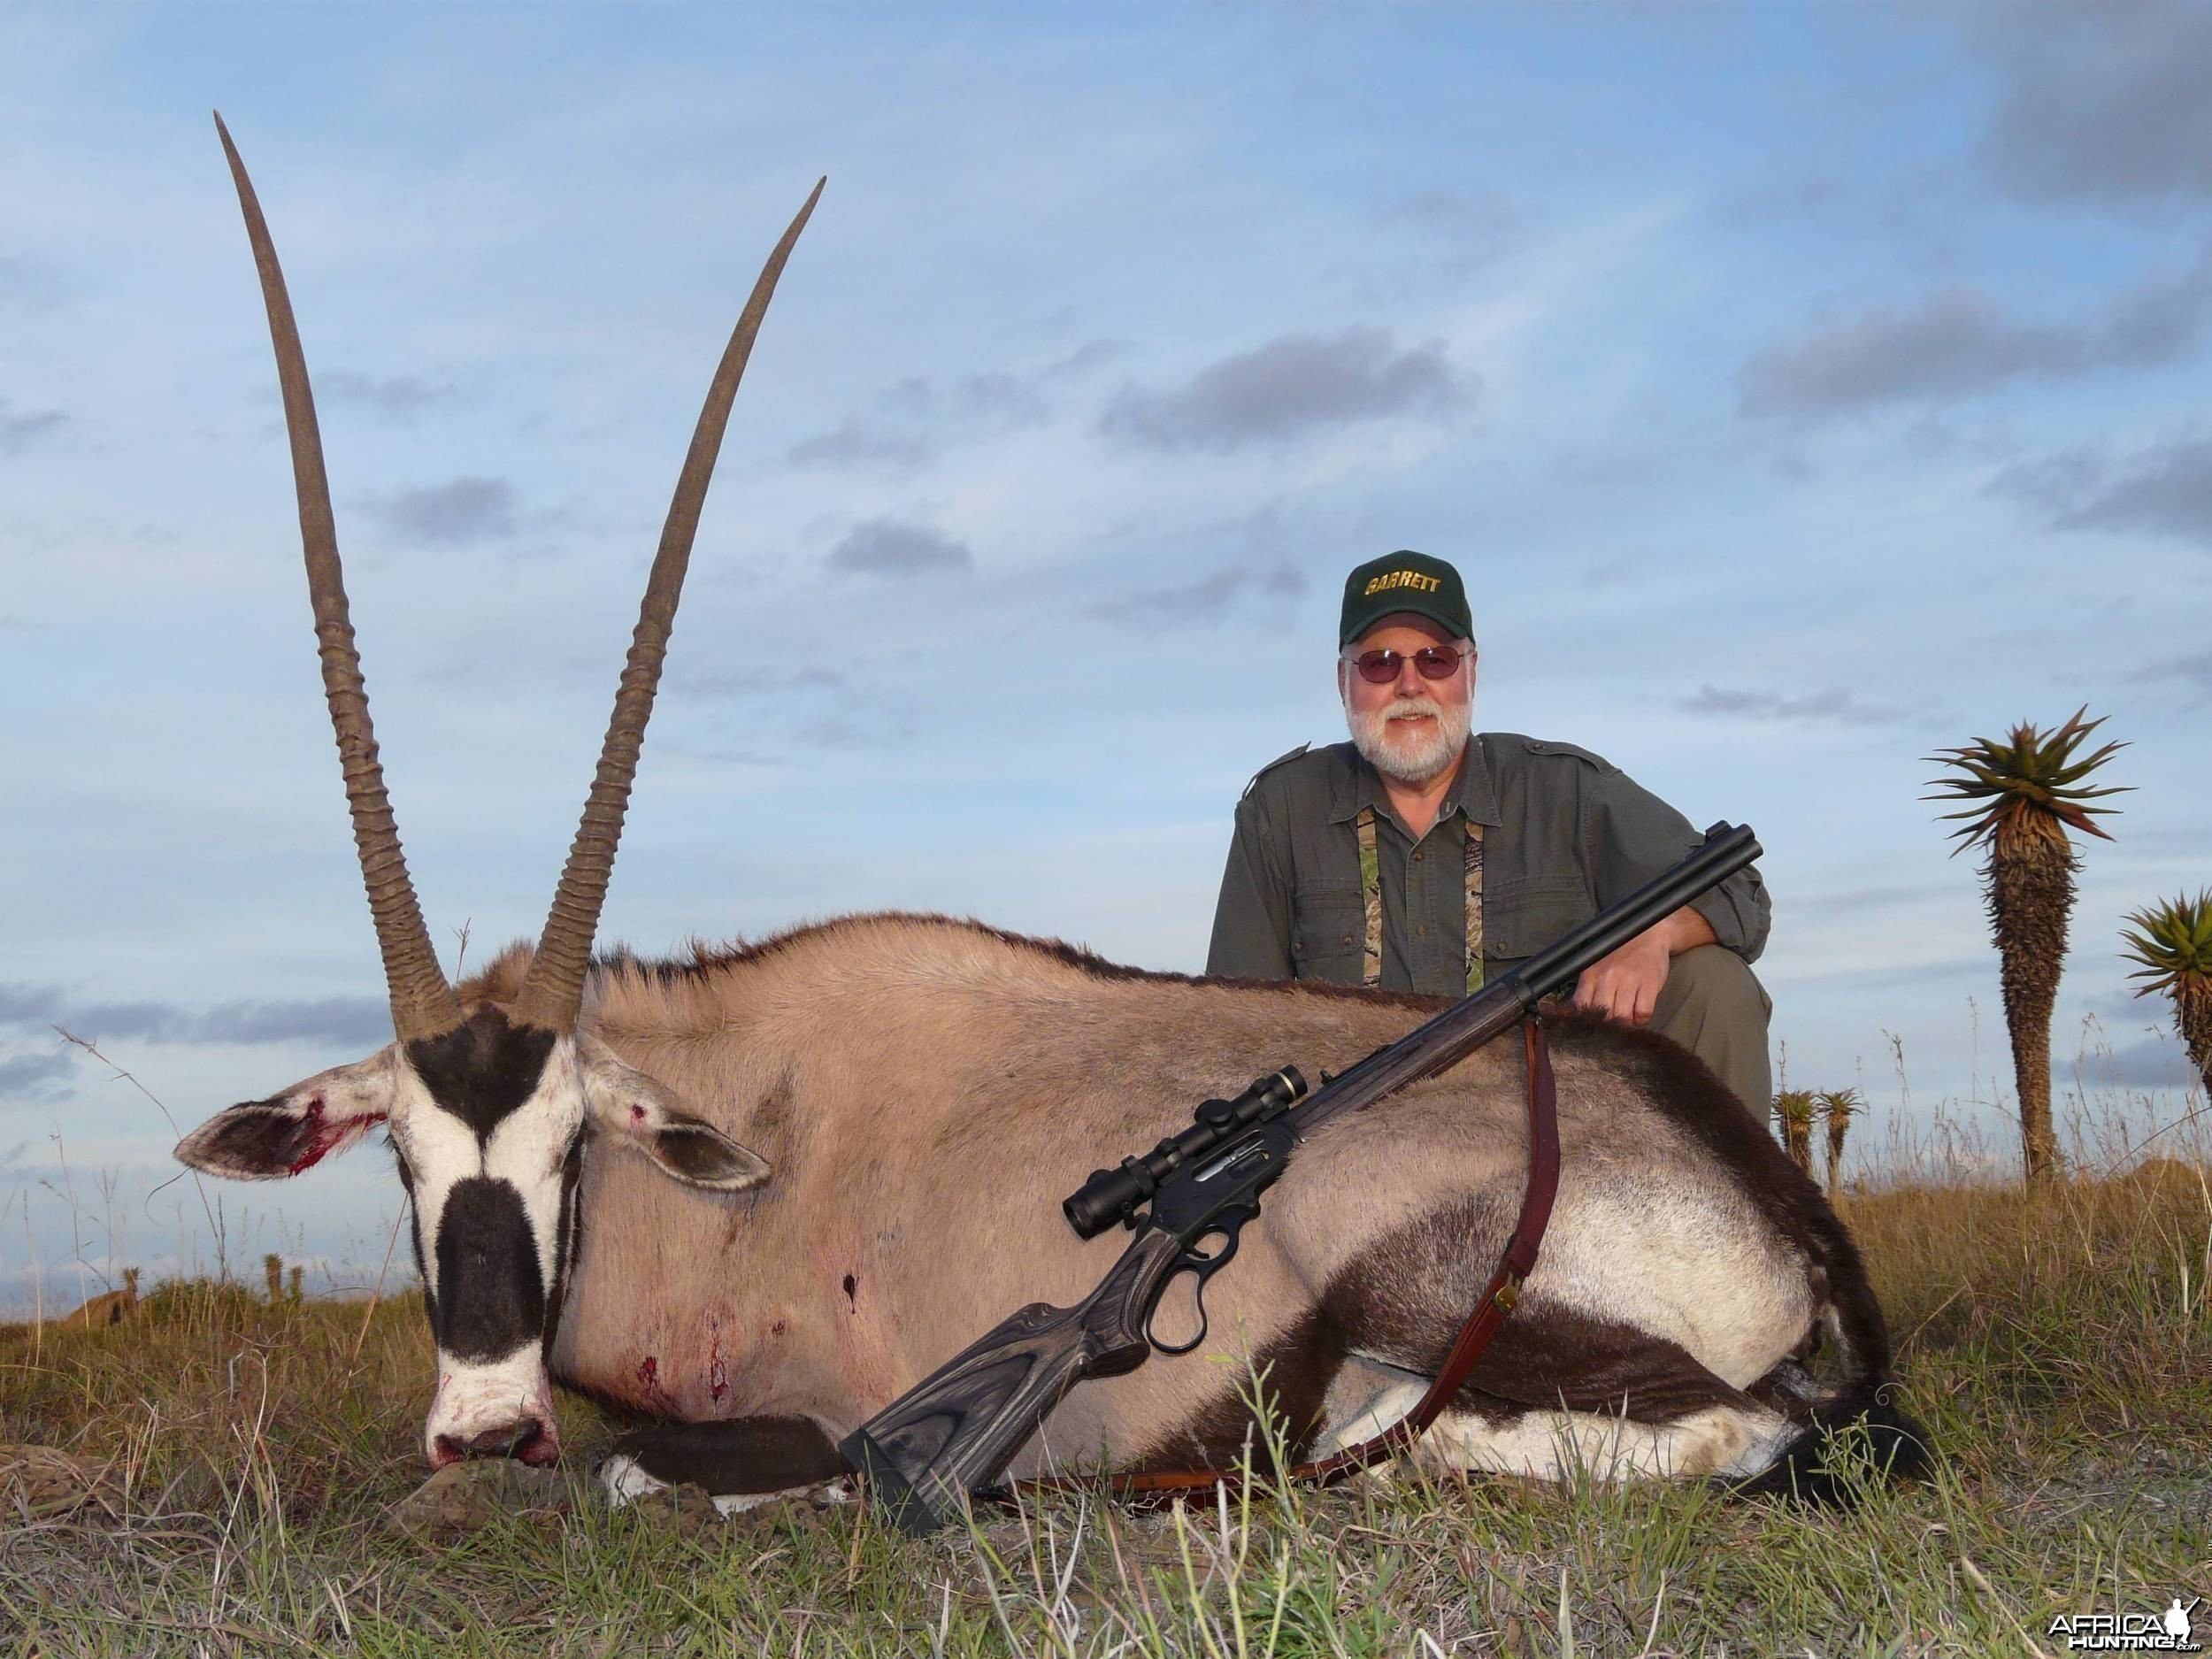 Tremendous Gemsbok to take home.